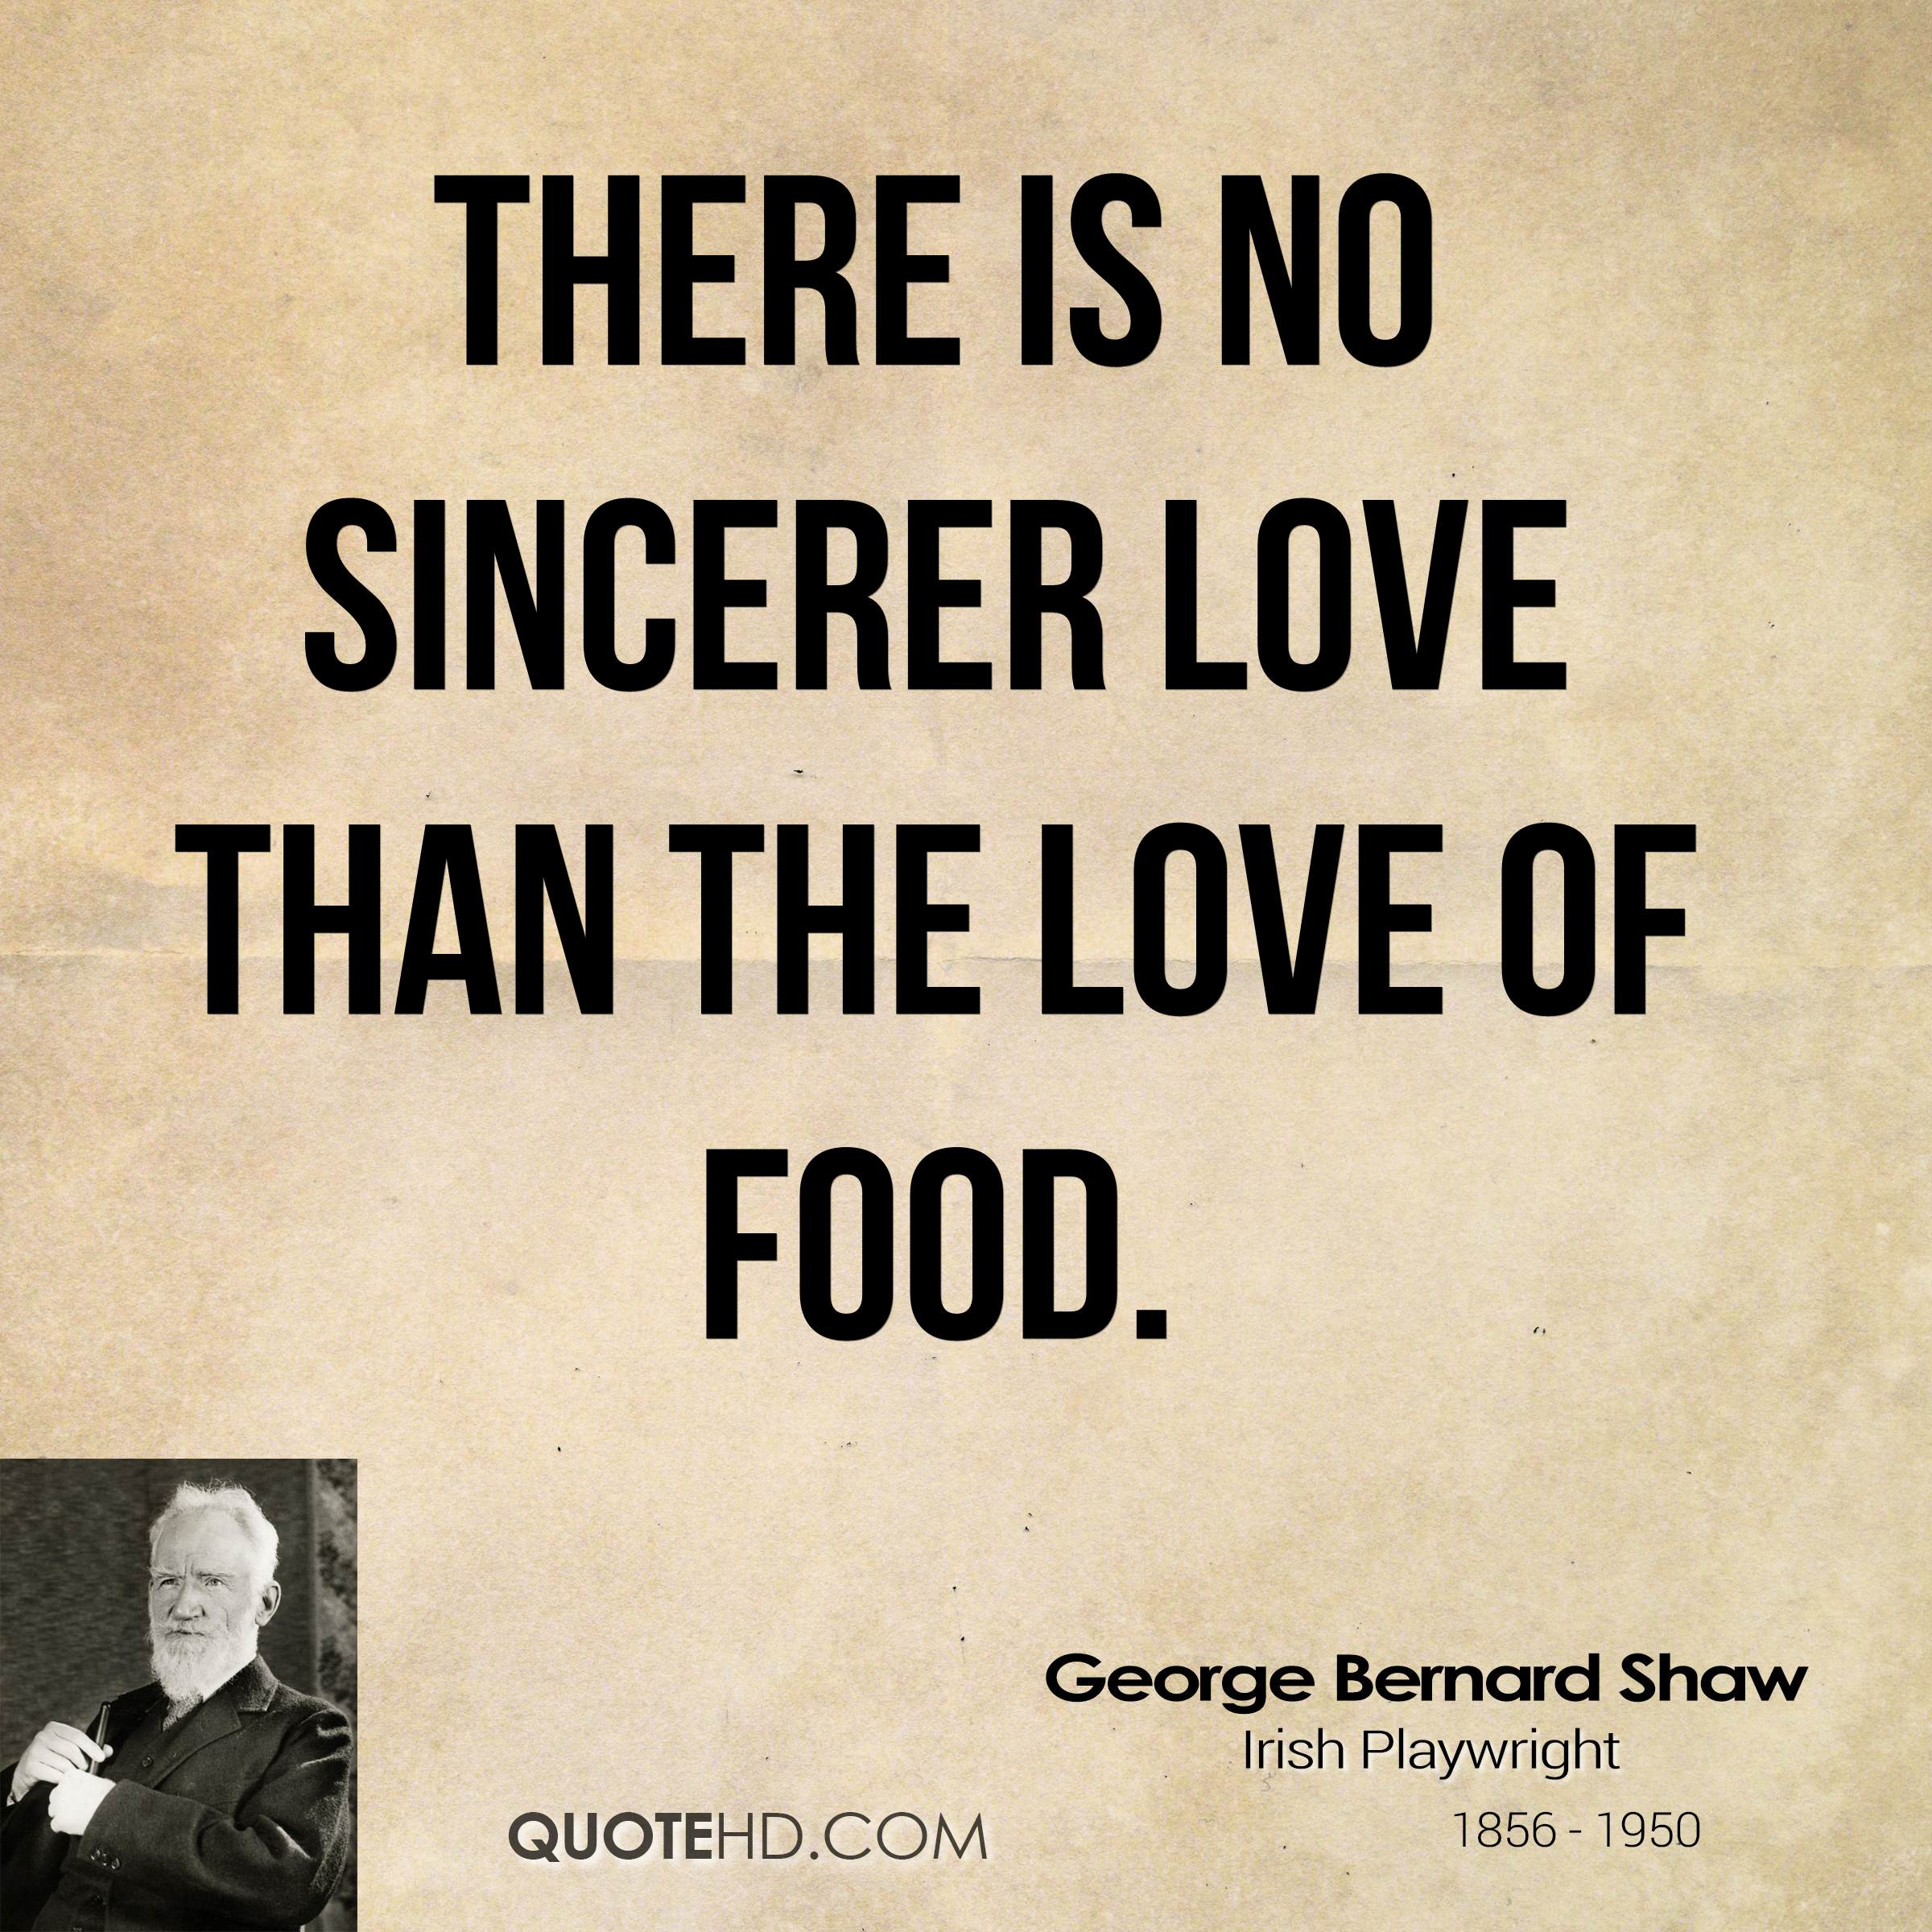 Famous Irish Quotes About Life 66 Top Food Quotes & Sayings